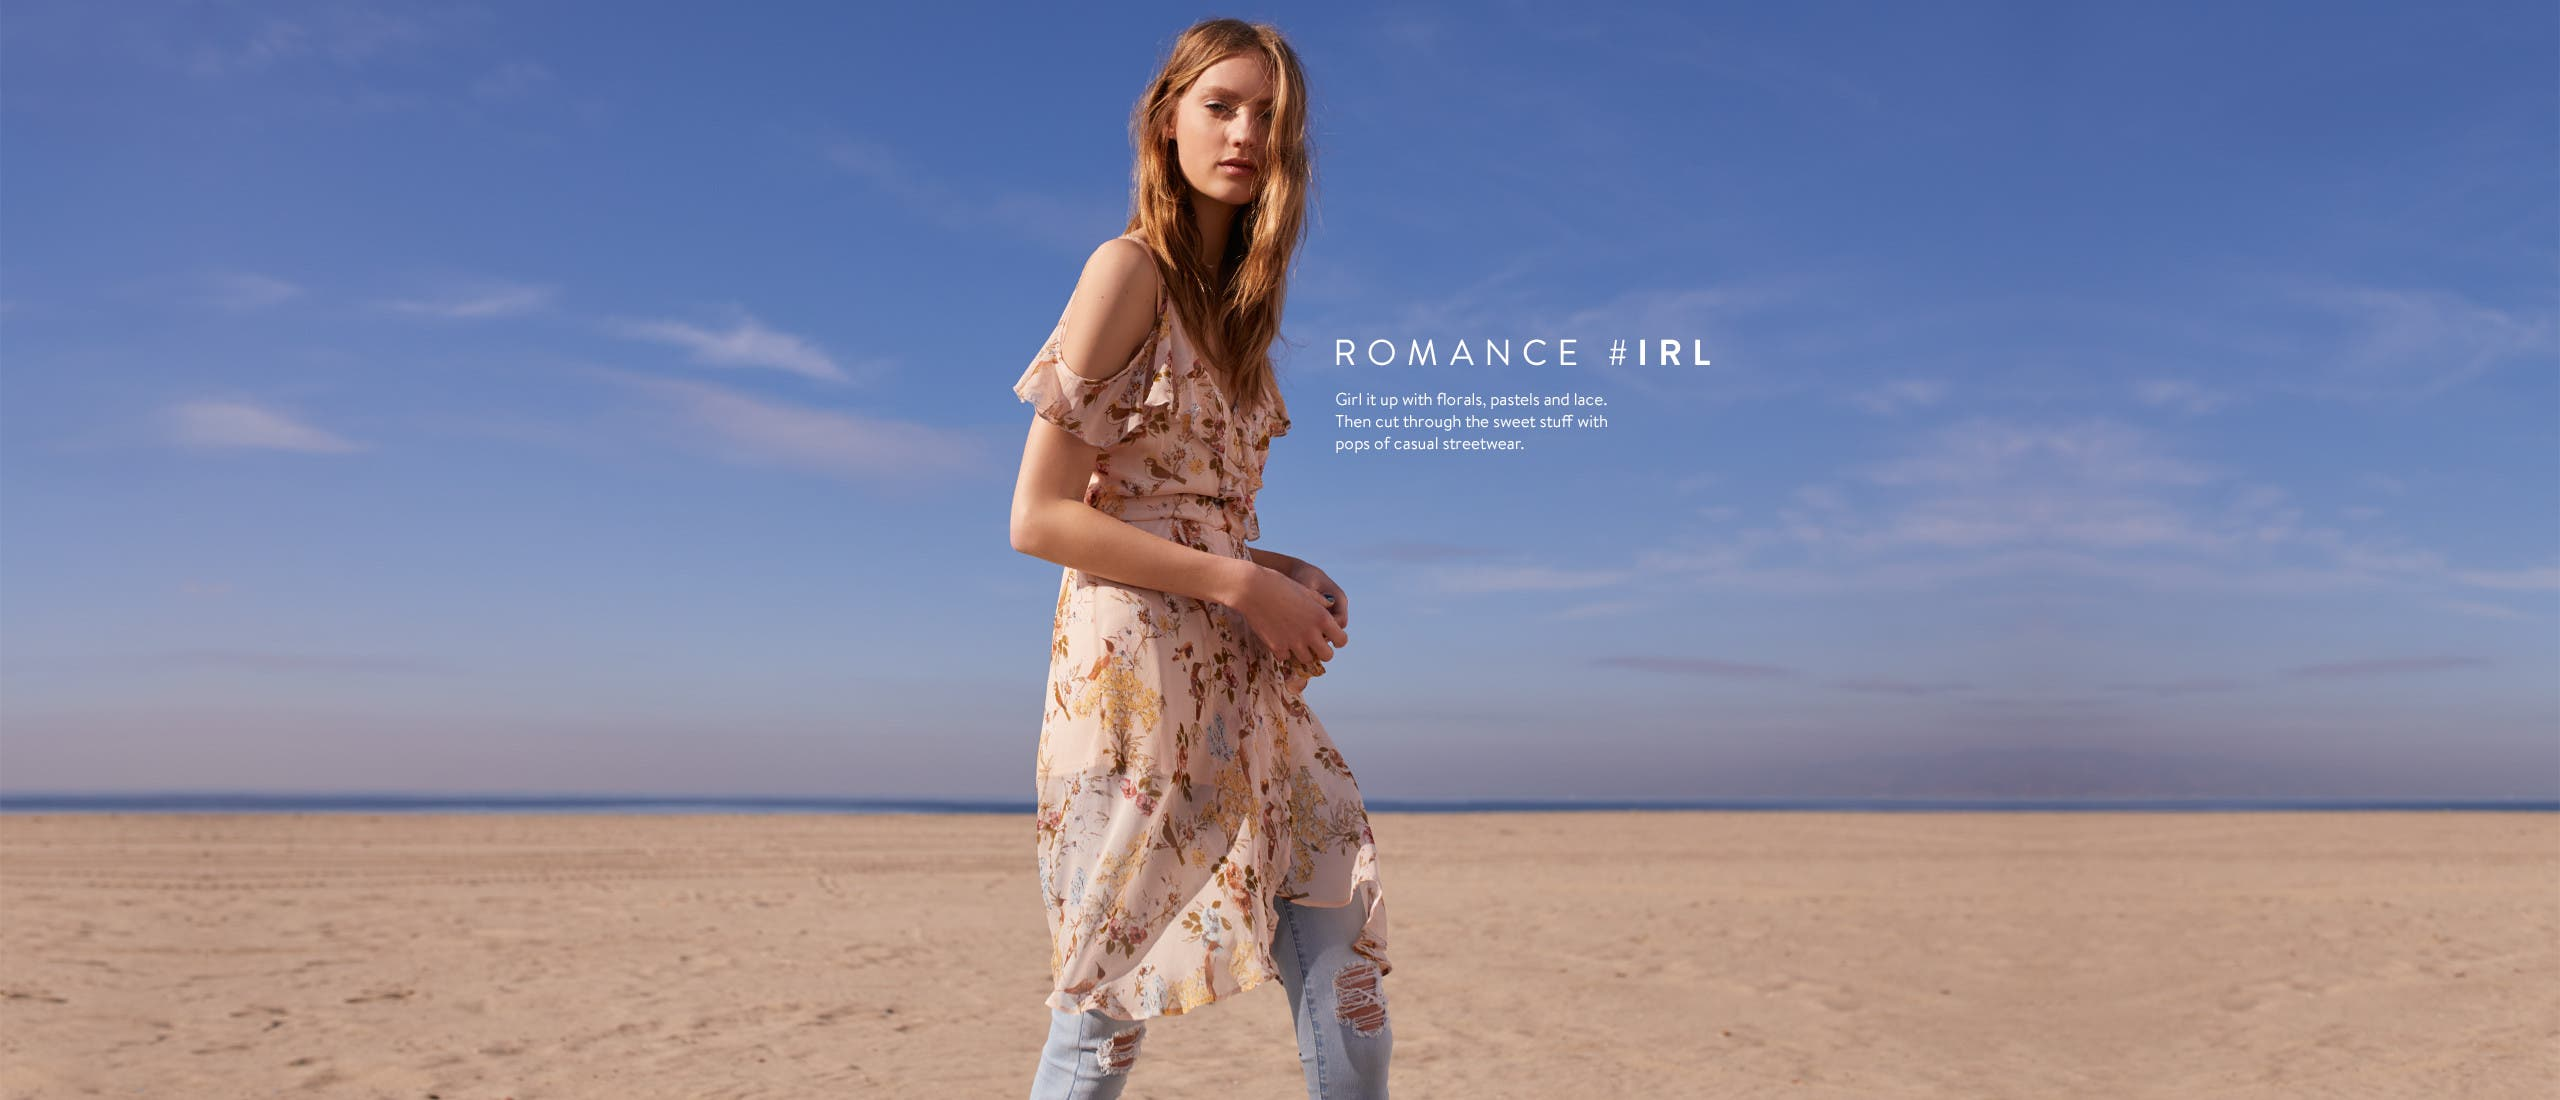 Romance in real life. Women's trend clothing, shoes and accessories.